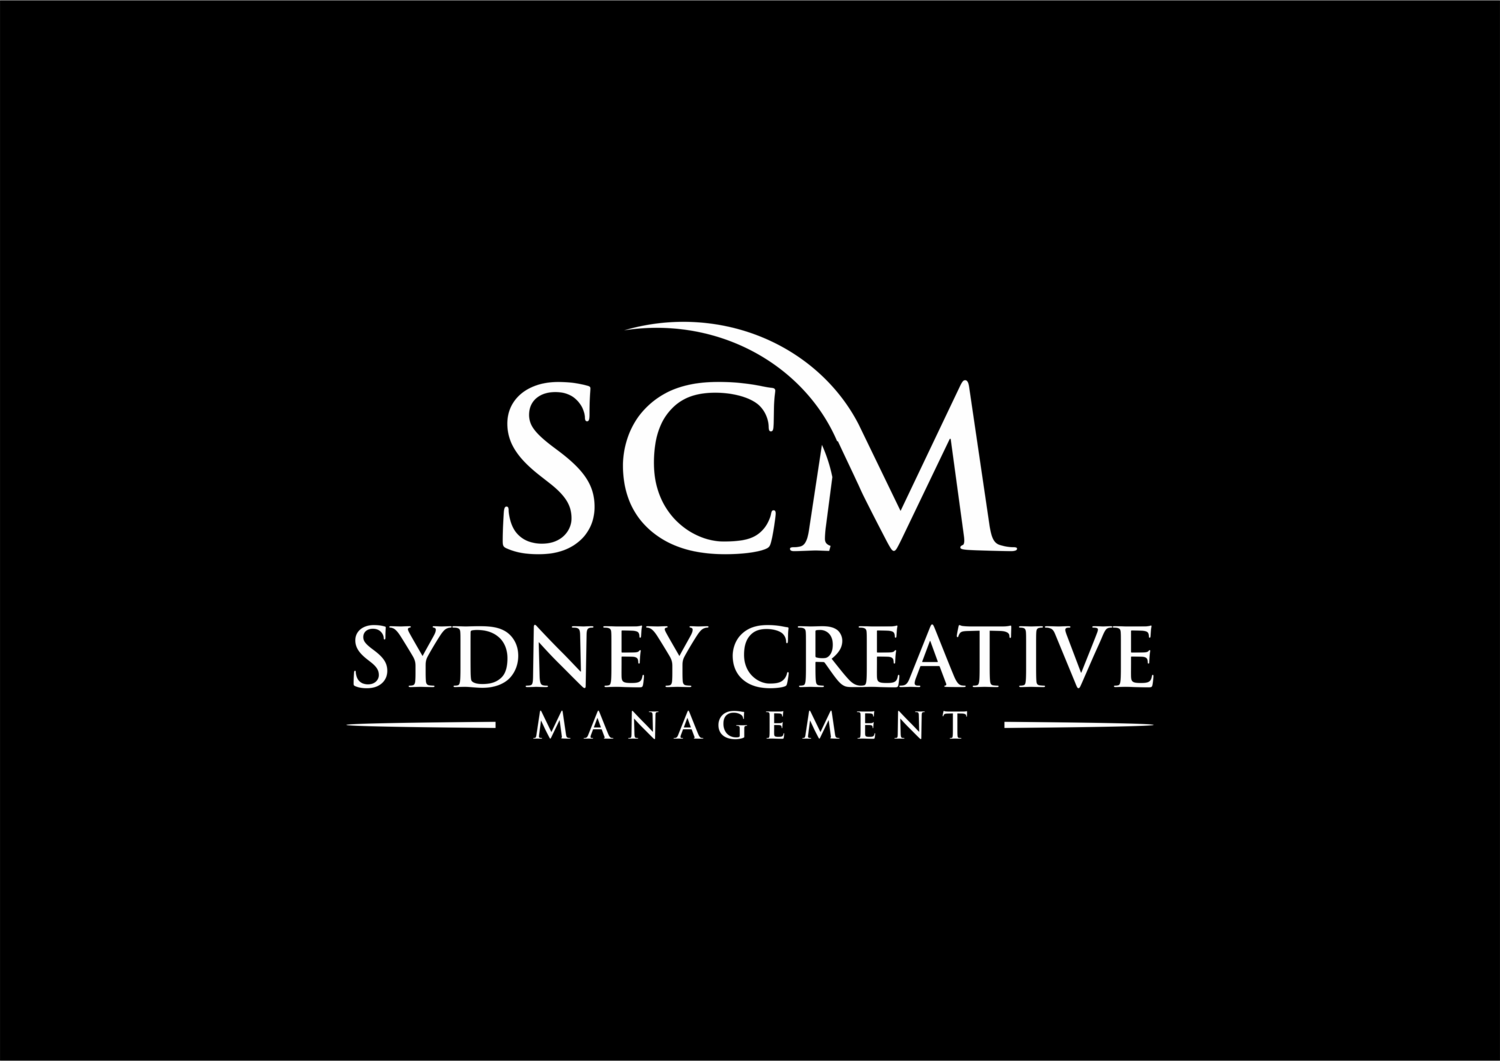 Sydney Creative Management